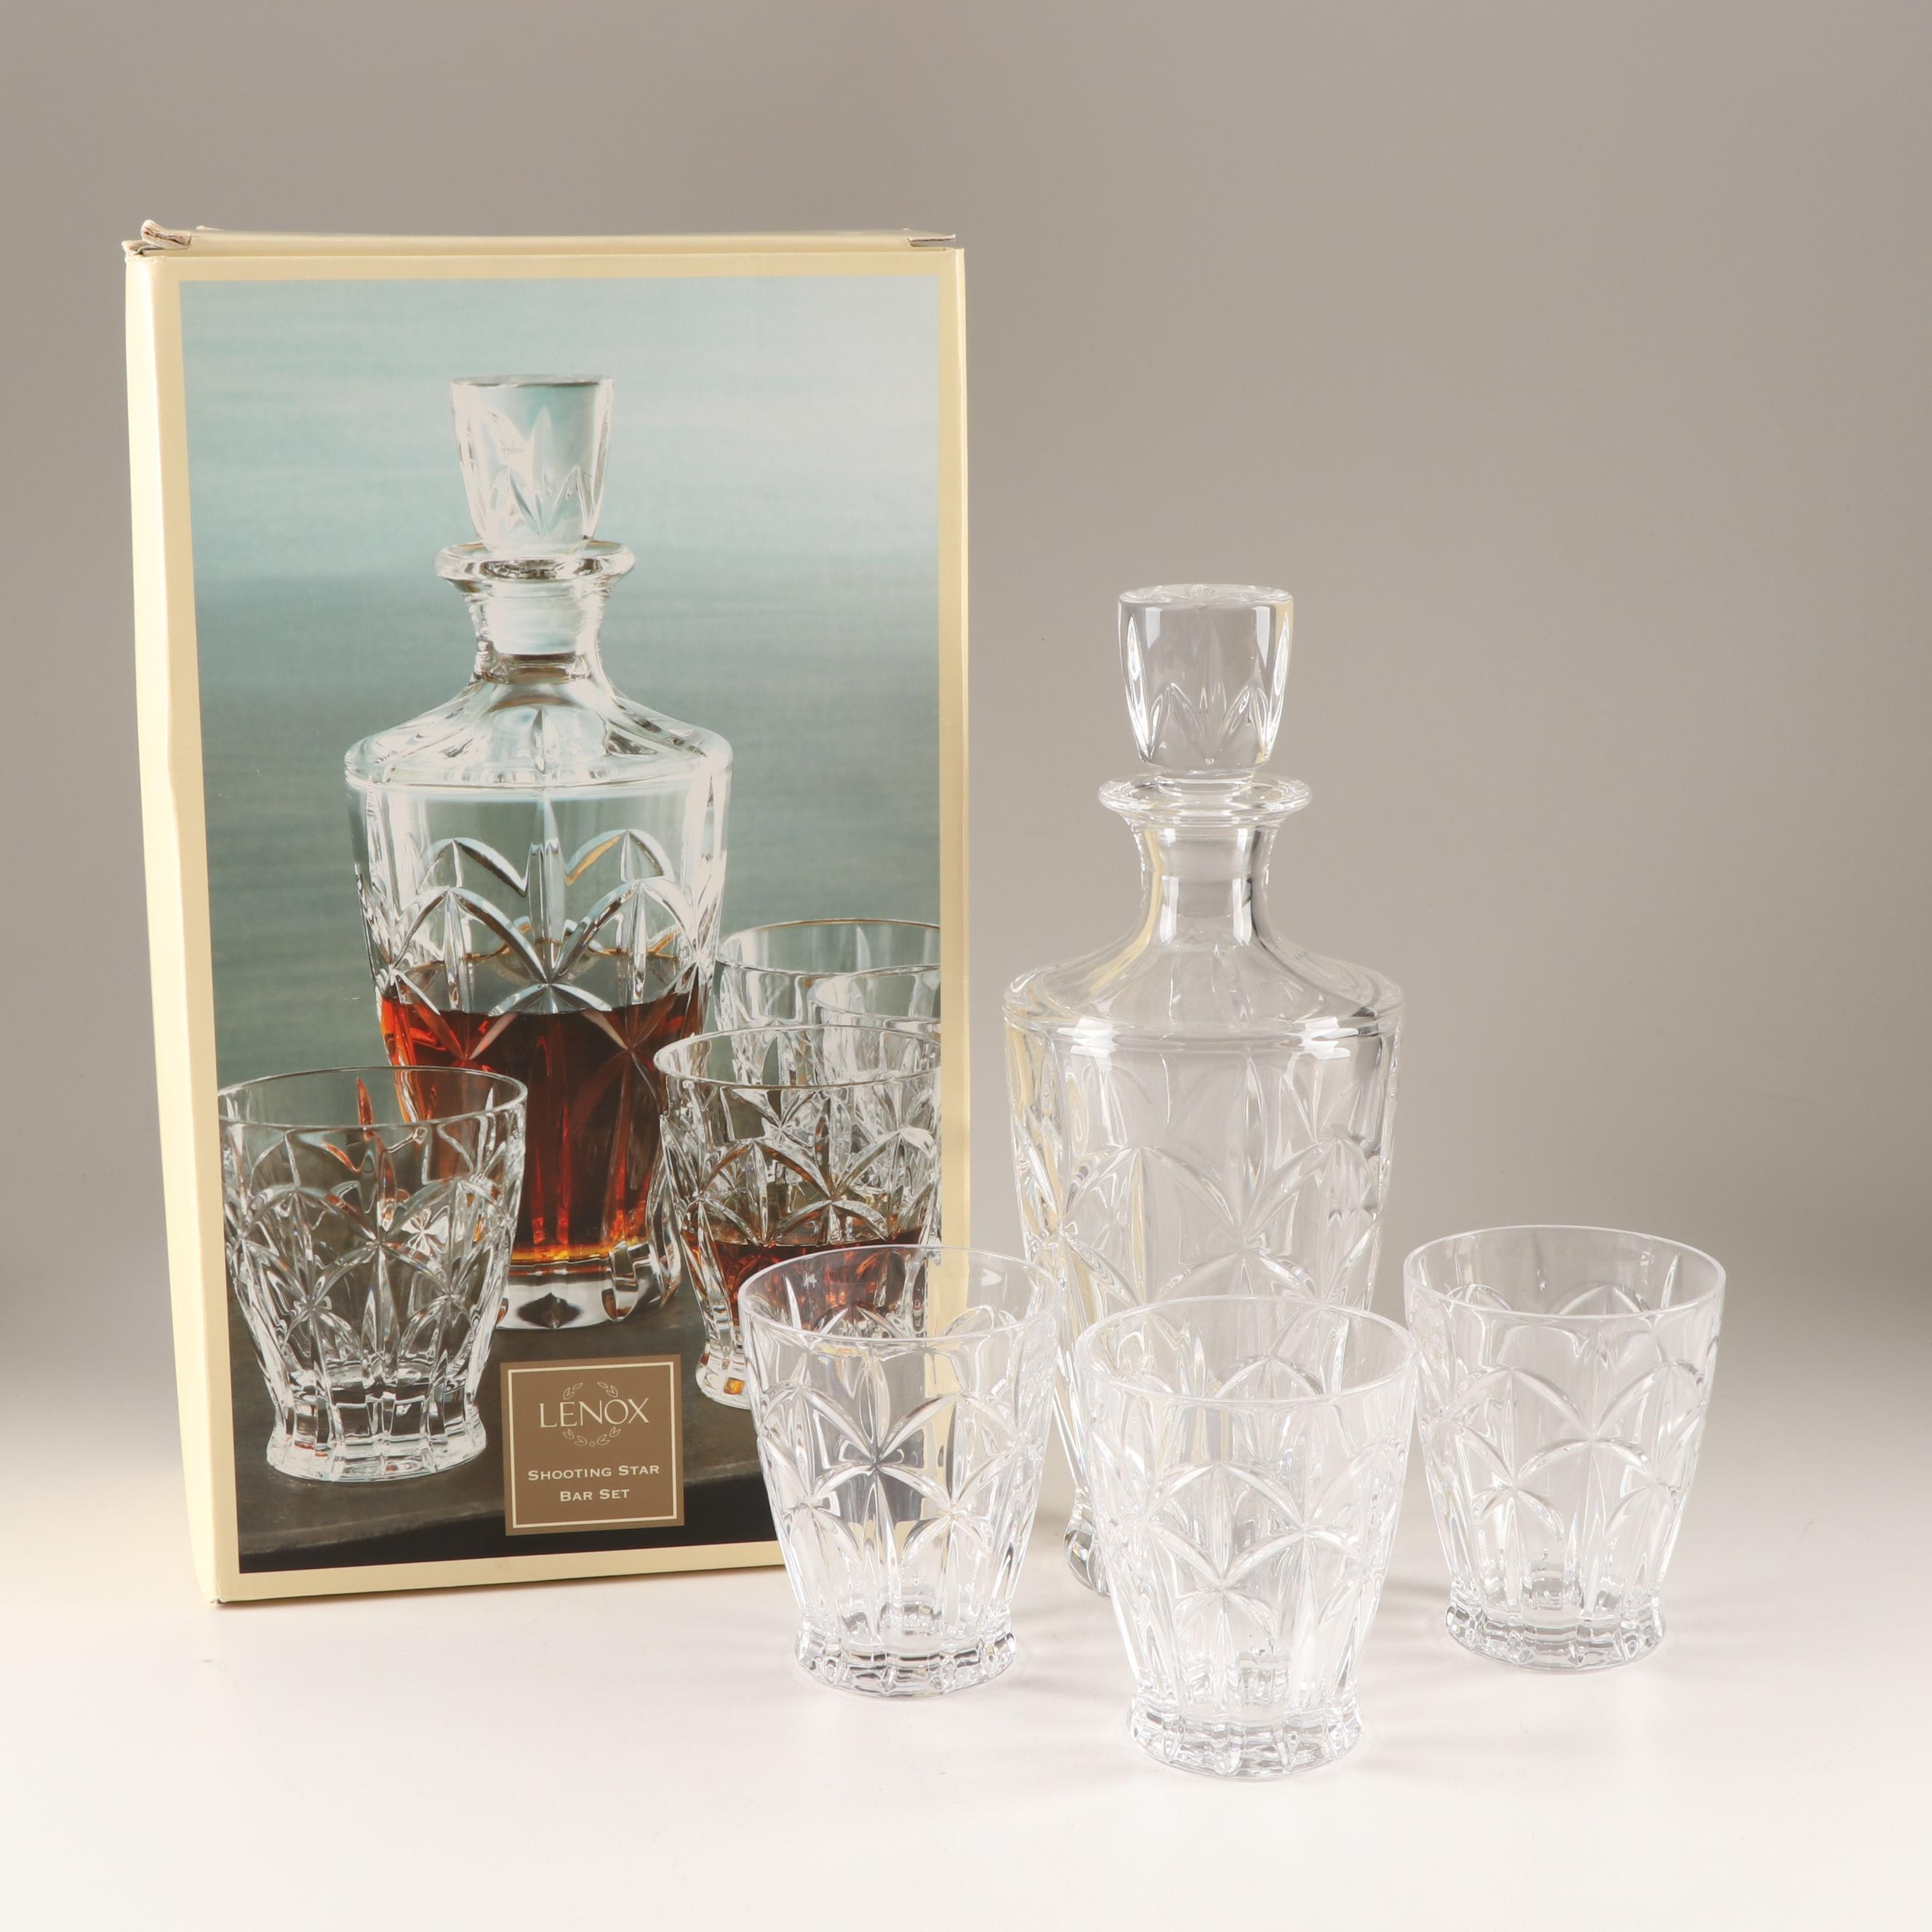 "Lenox ""Shooting Star"" Lead Crystal Barware Set"